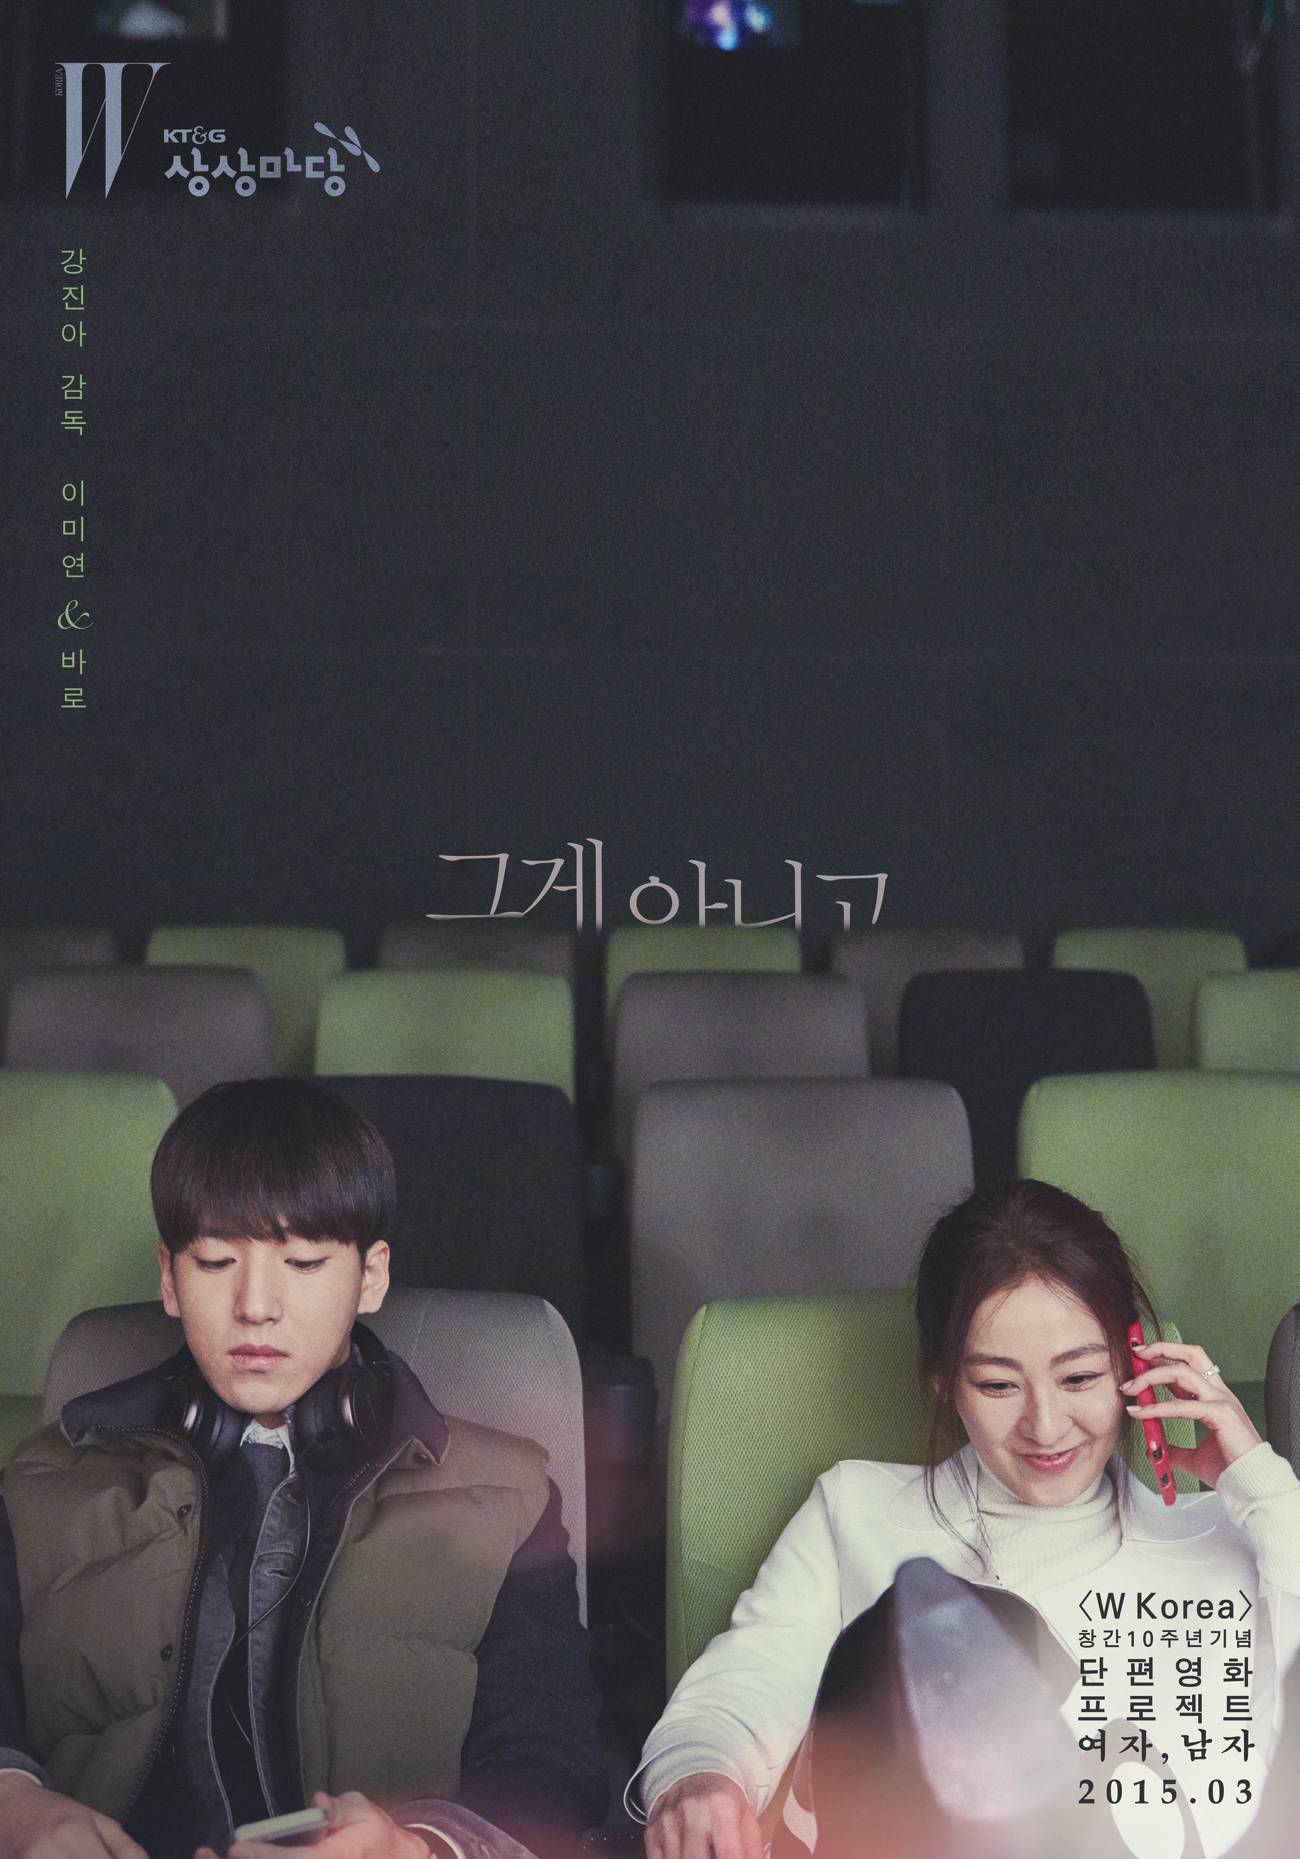 Video] Teaser video released for the Korean movies 'Not That', 'Sad